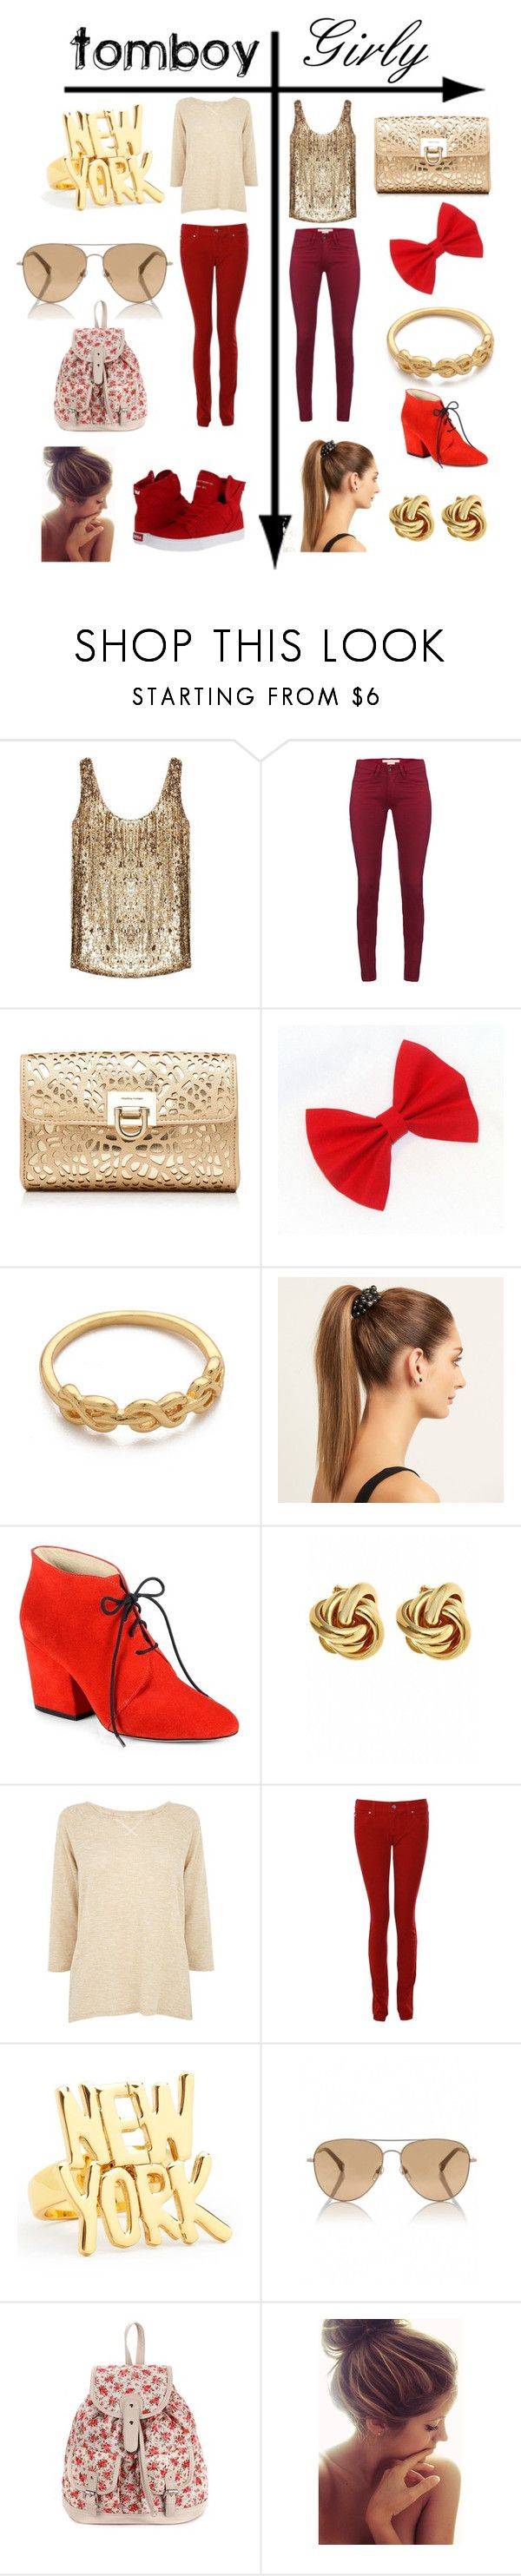 """""""Tomboy vs. Girly: Gold & Red"""" by mustachiopistachio ❤ liked on Polyvore featuring ZoÃ« Jordan, French Connection, Forever New, Gorjana, Mimco, Kate Spade, Fornash, Oasis, Armani Jeans and Michael Kors"""